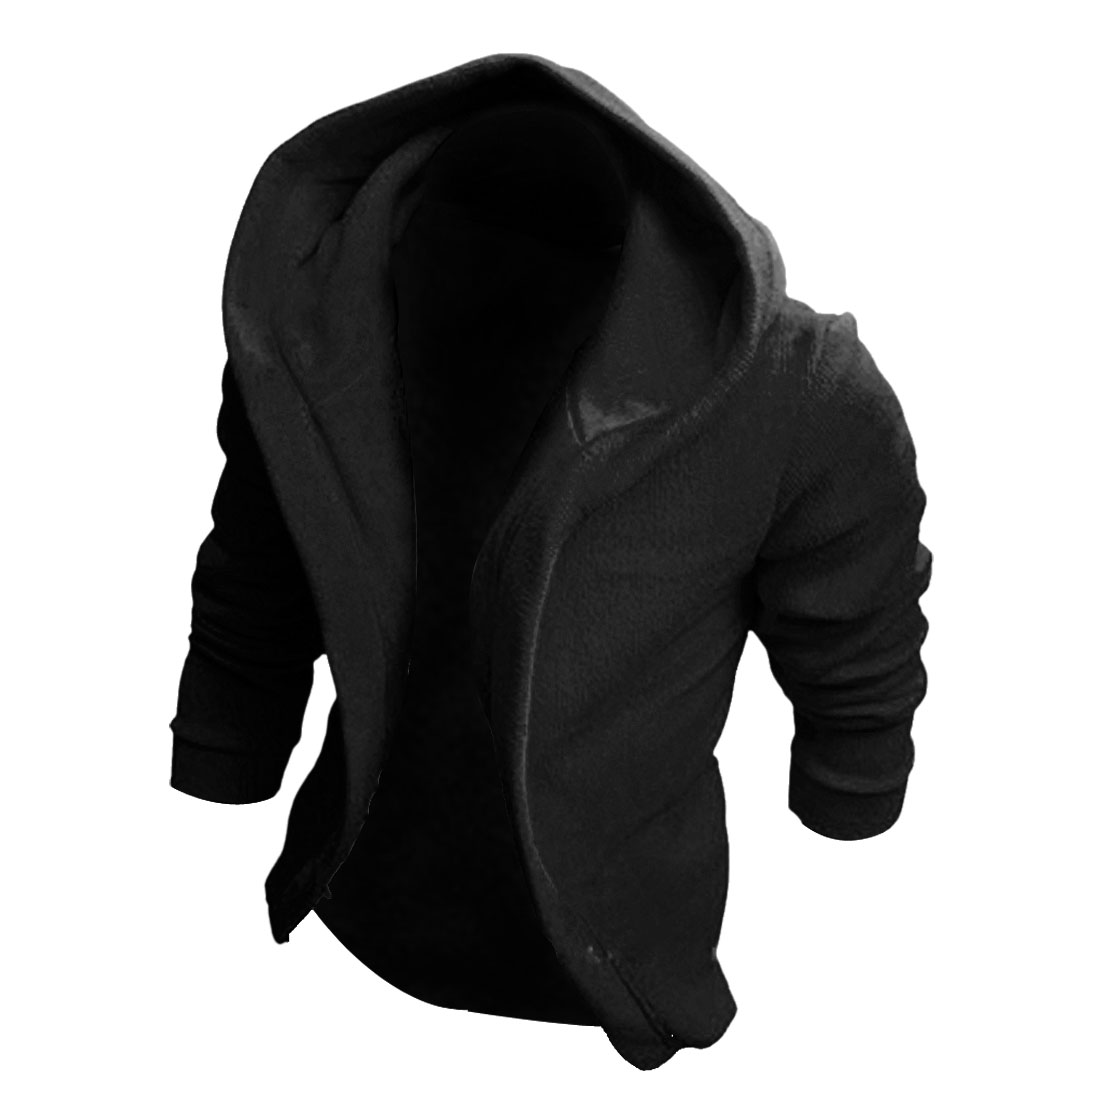 Men Long Sleeve Solid Color Skinny Fit Casual Jackets Hoodies Black M